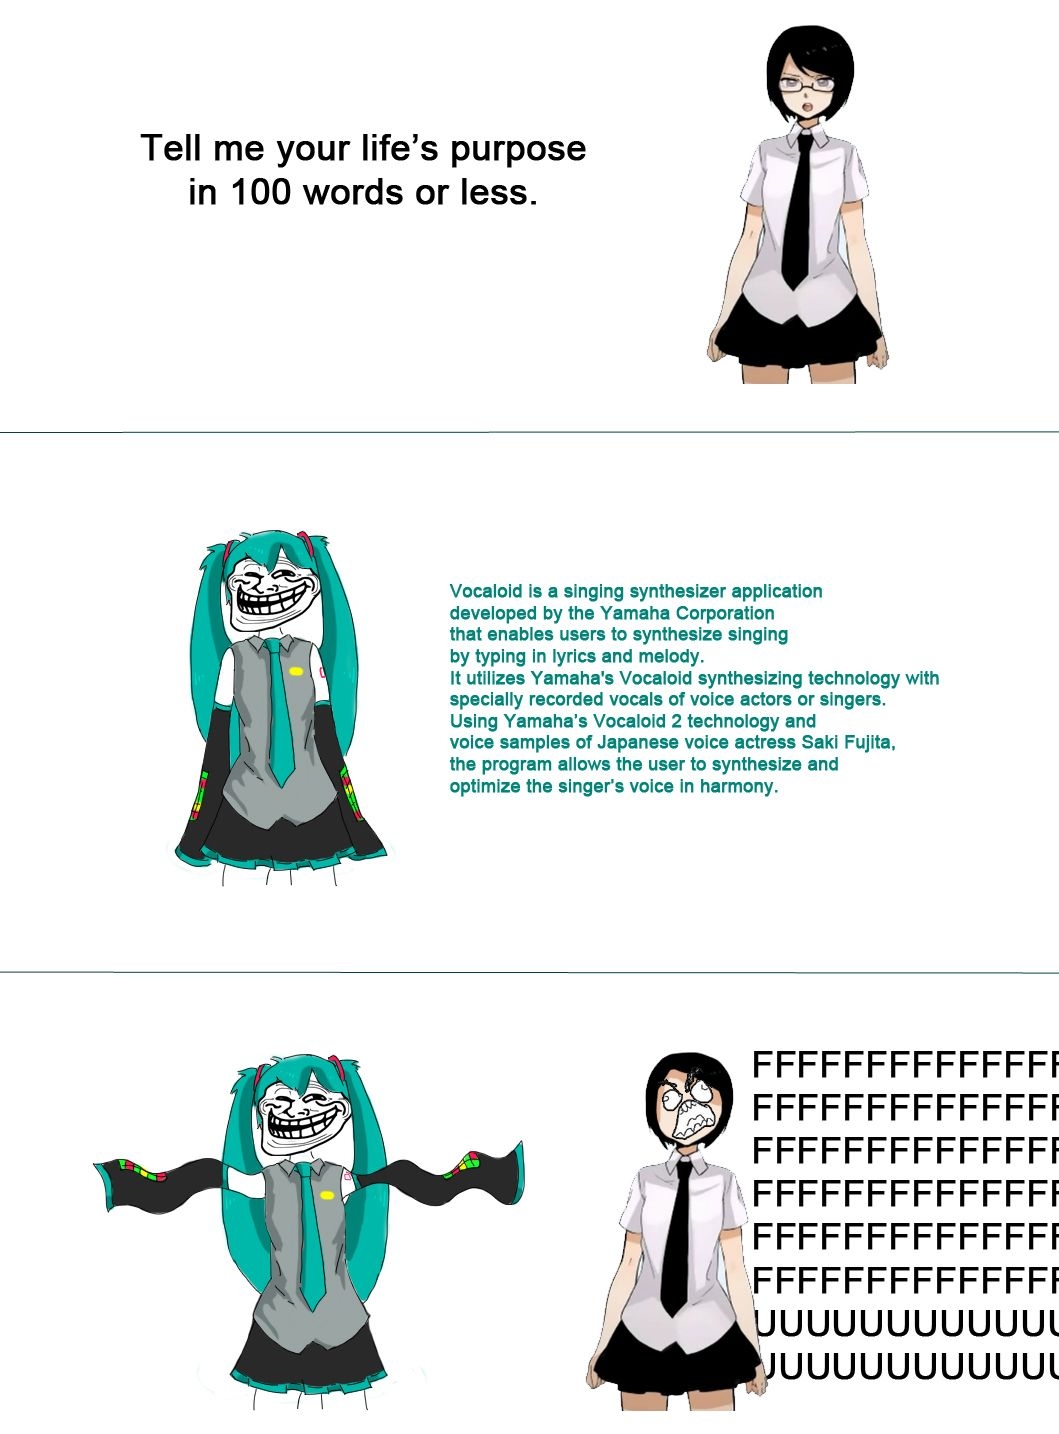 Vocaloid Memes Omg Why Would Someone Do This Why Did They Feel The Need Why Why Why Vocaloid Funny Vocaloid Miku